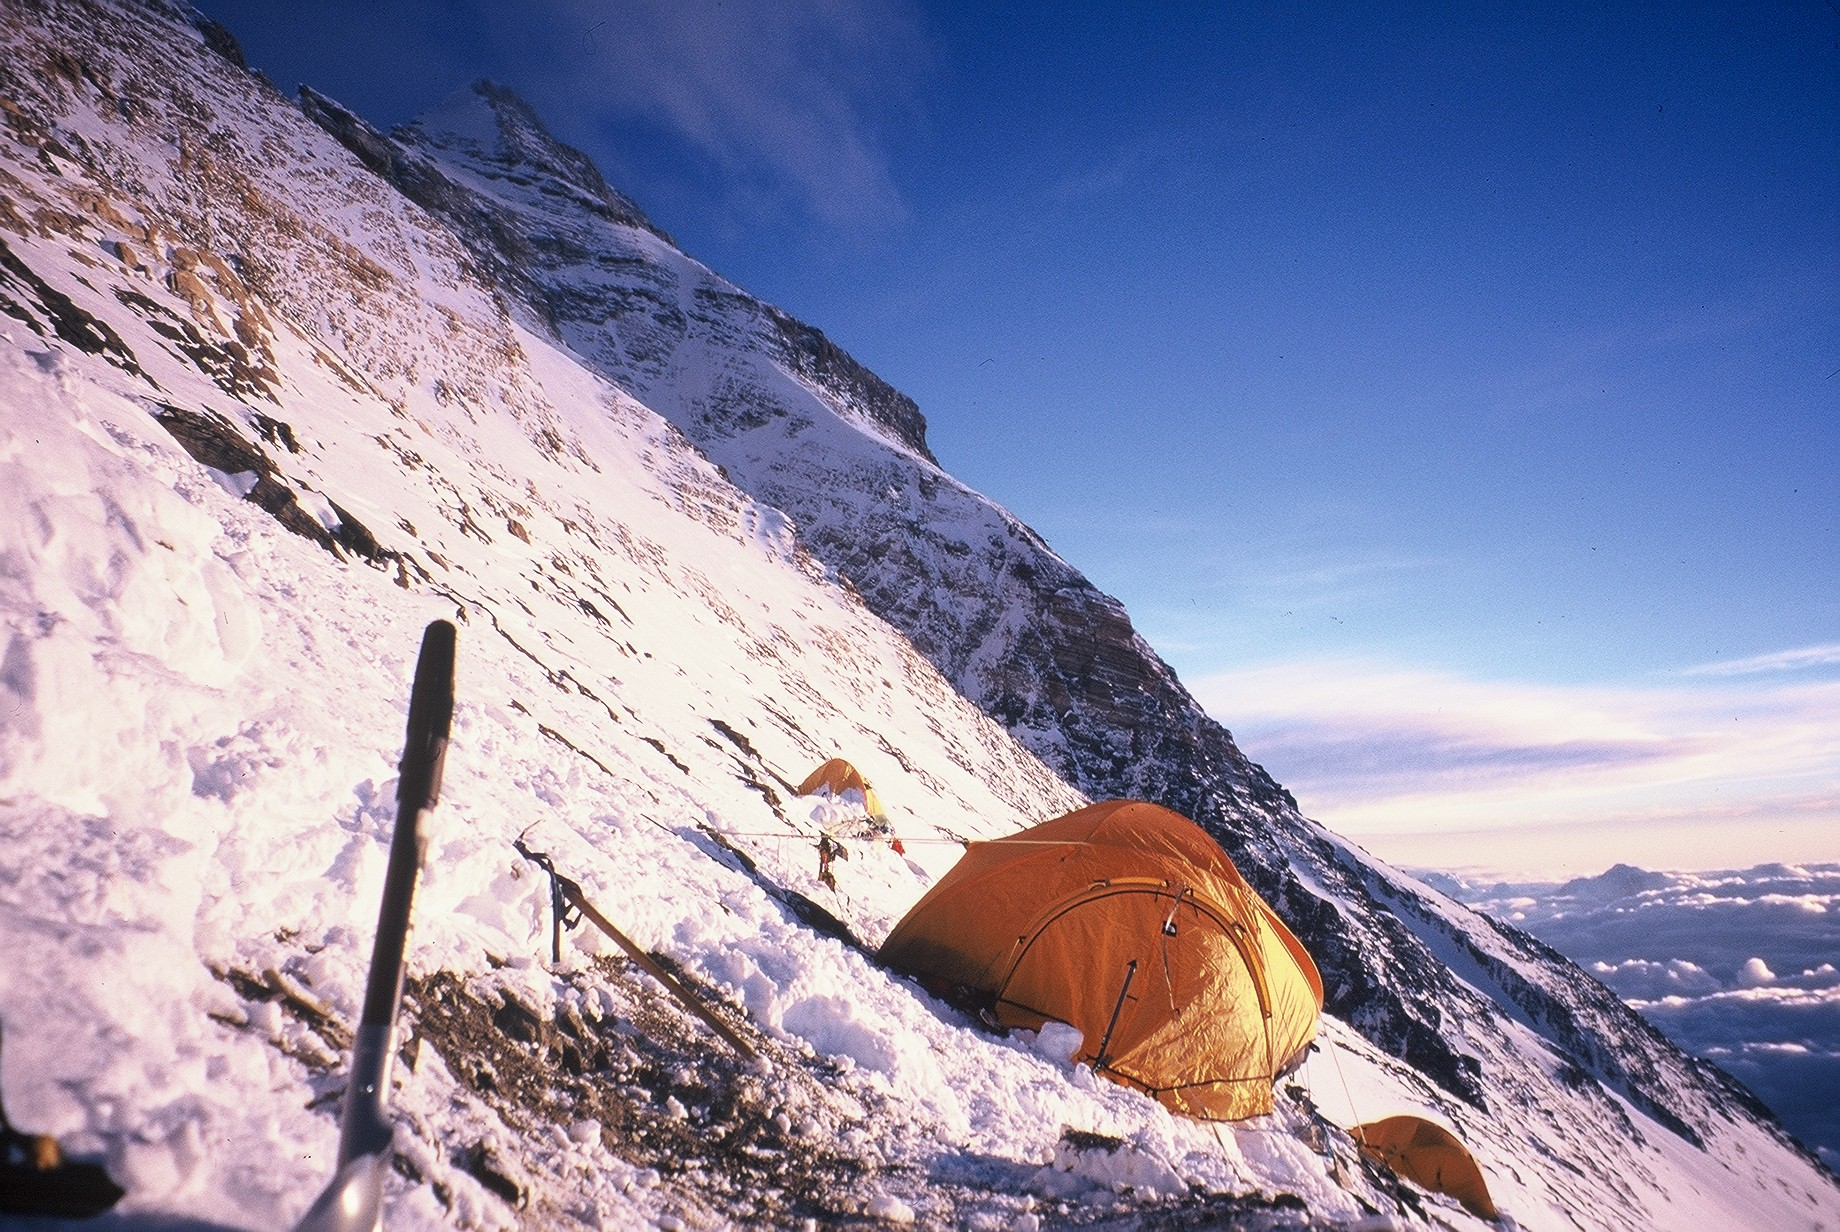 85.Al Camp 3 (8200m, Everest2000